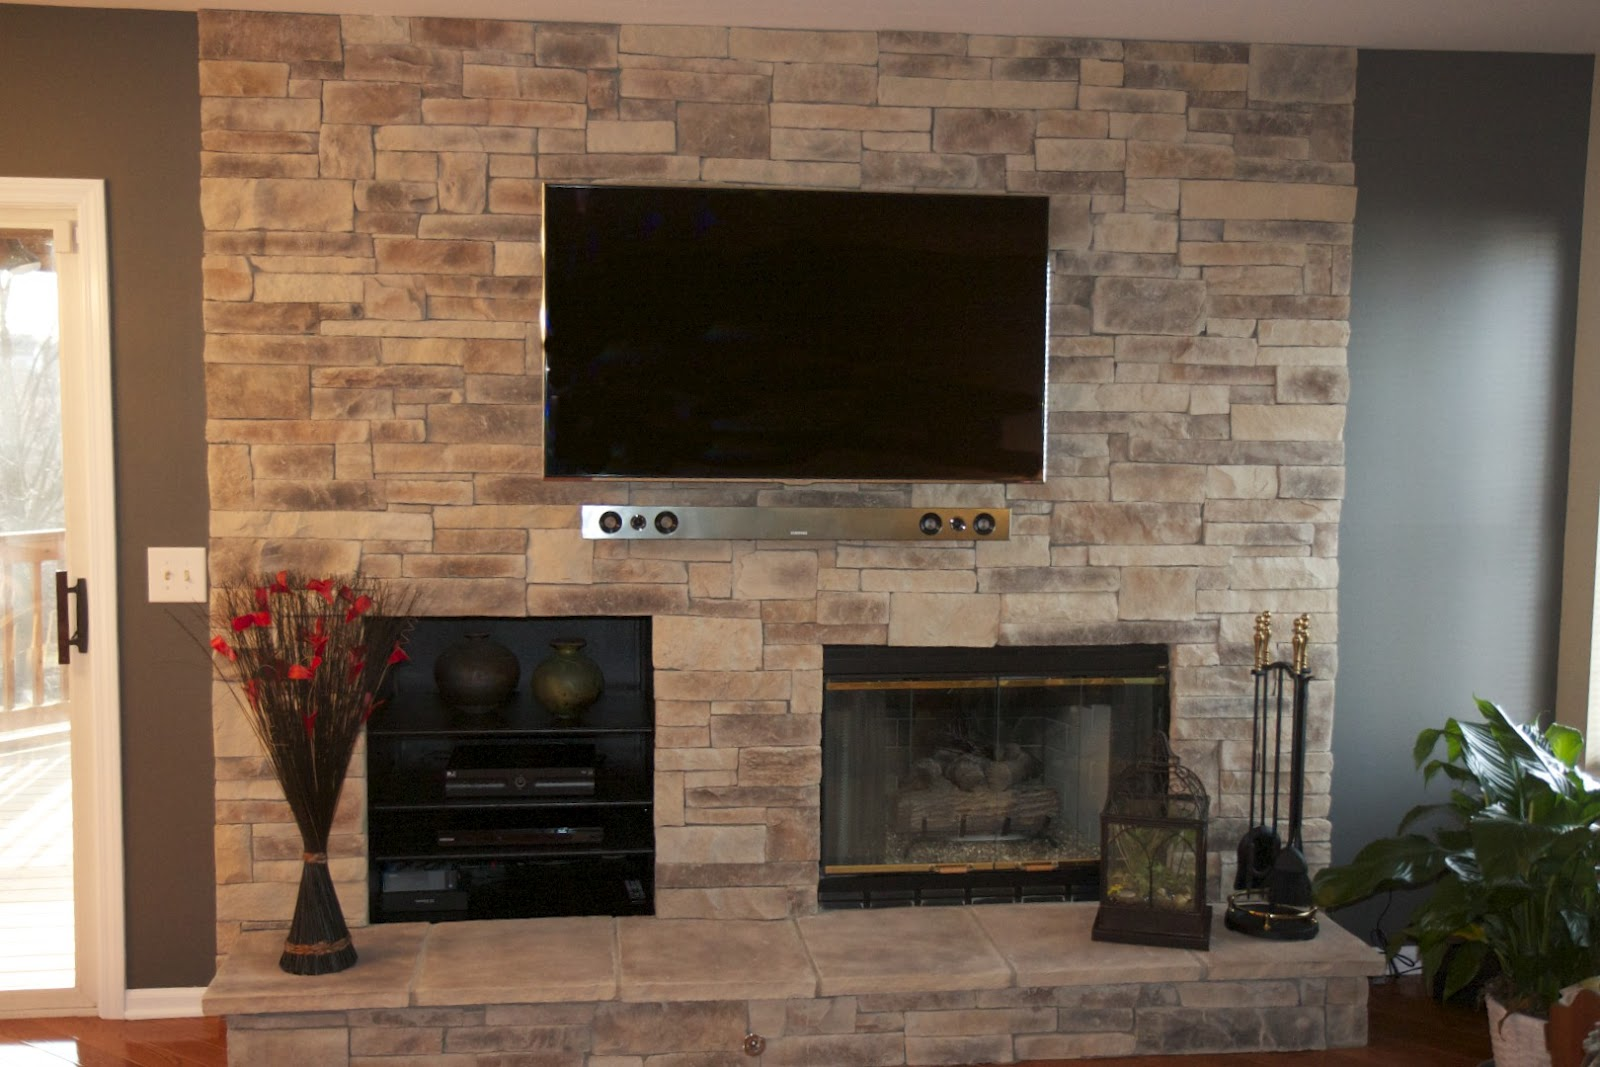 Design Fireplaces North Star Stone Stone Fireplaces And Stone Exteriors